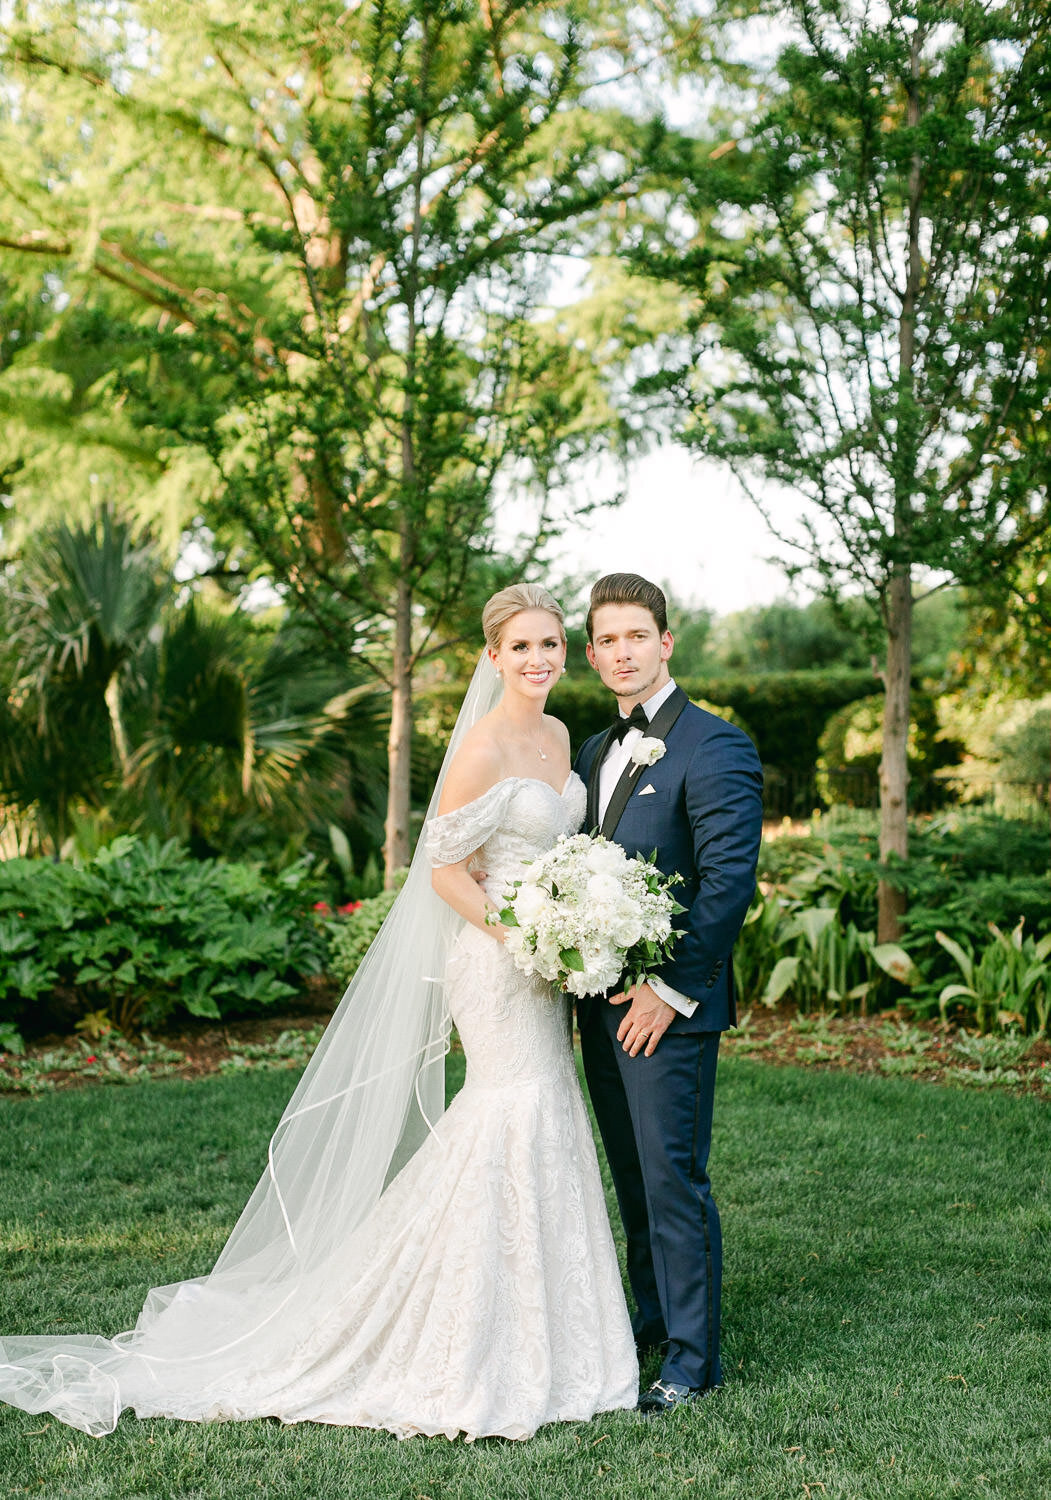 Bride in white wedding dress and veil and Groom in blue tuxedo posing for portrait in green garden